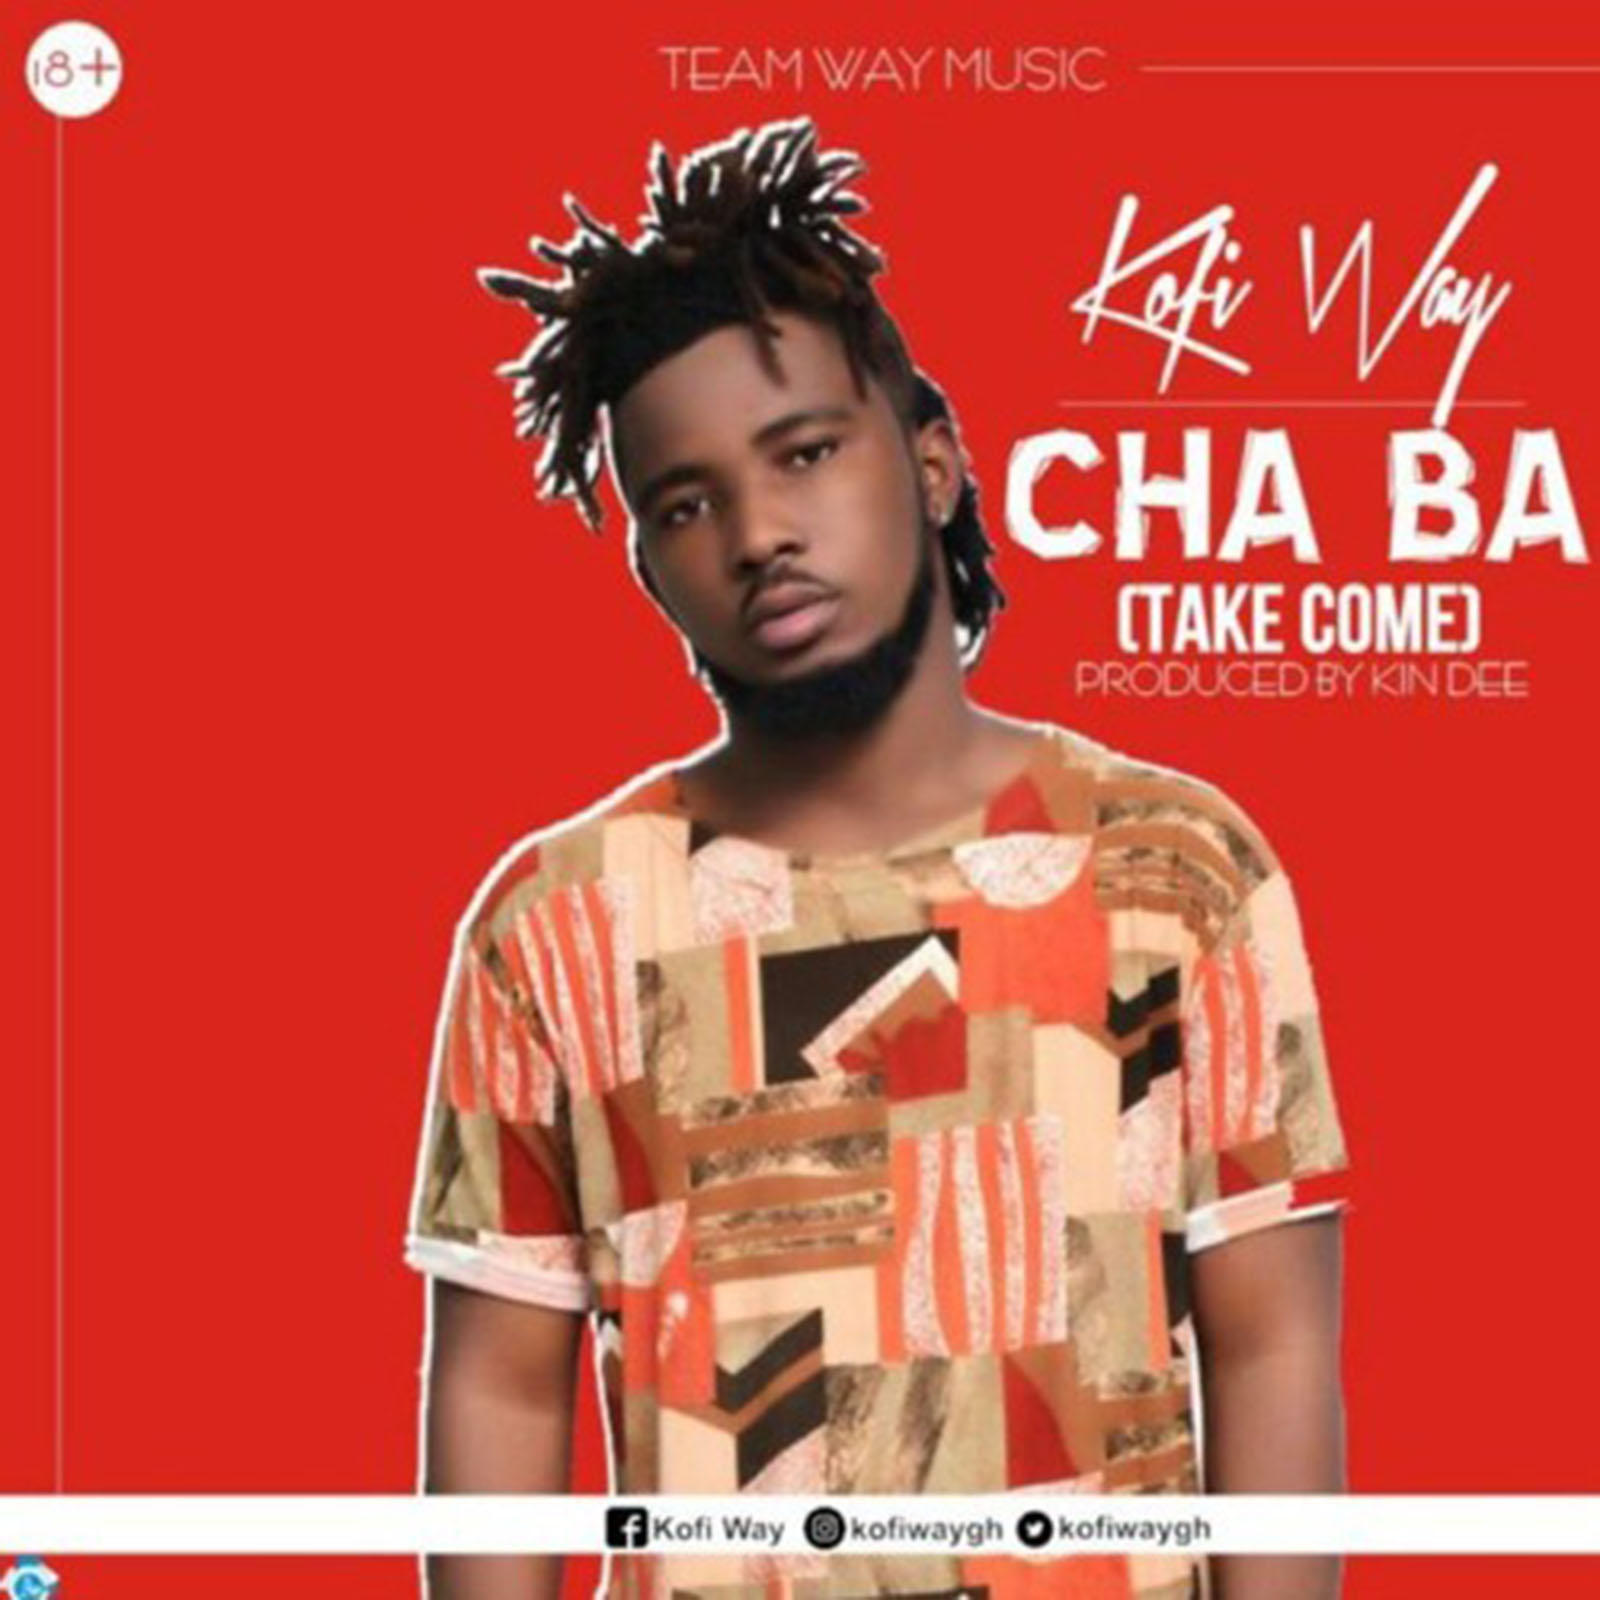 Cha Ba by Kofi Way